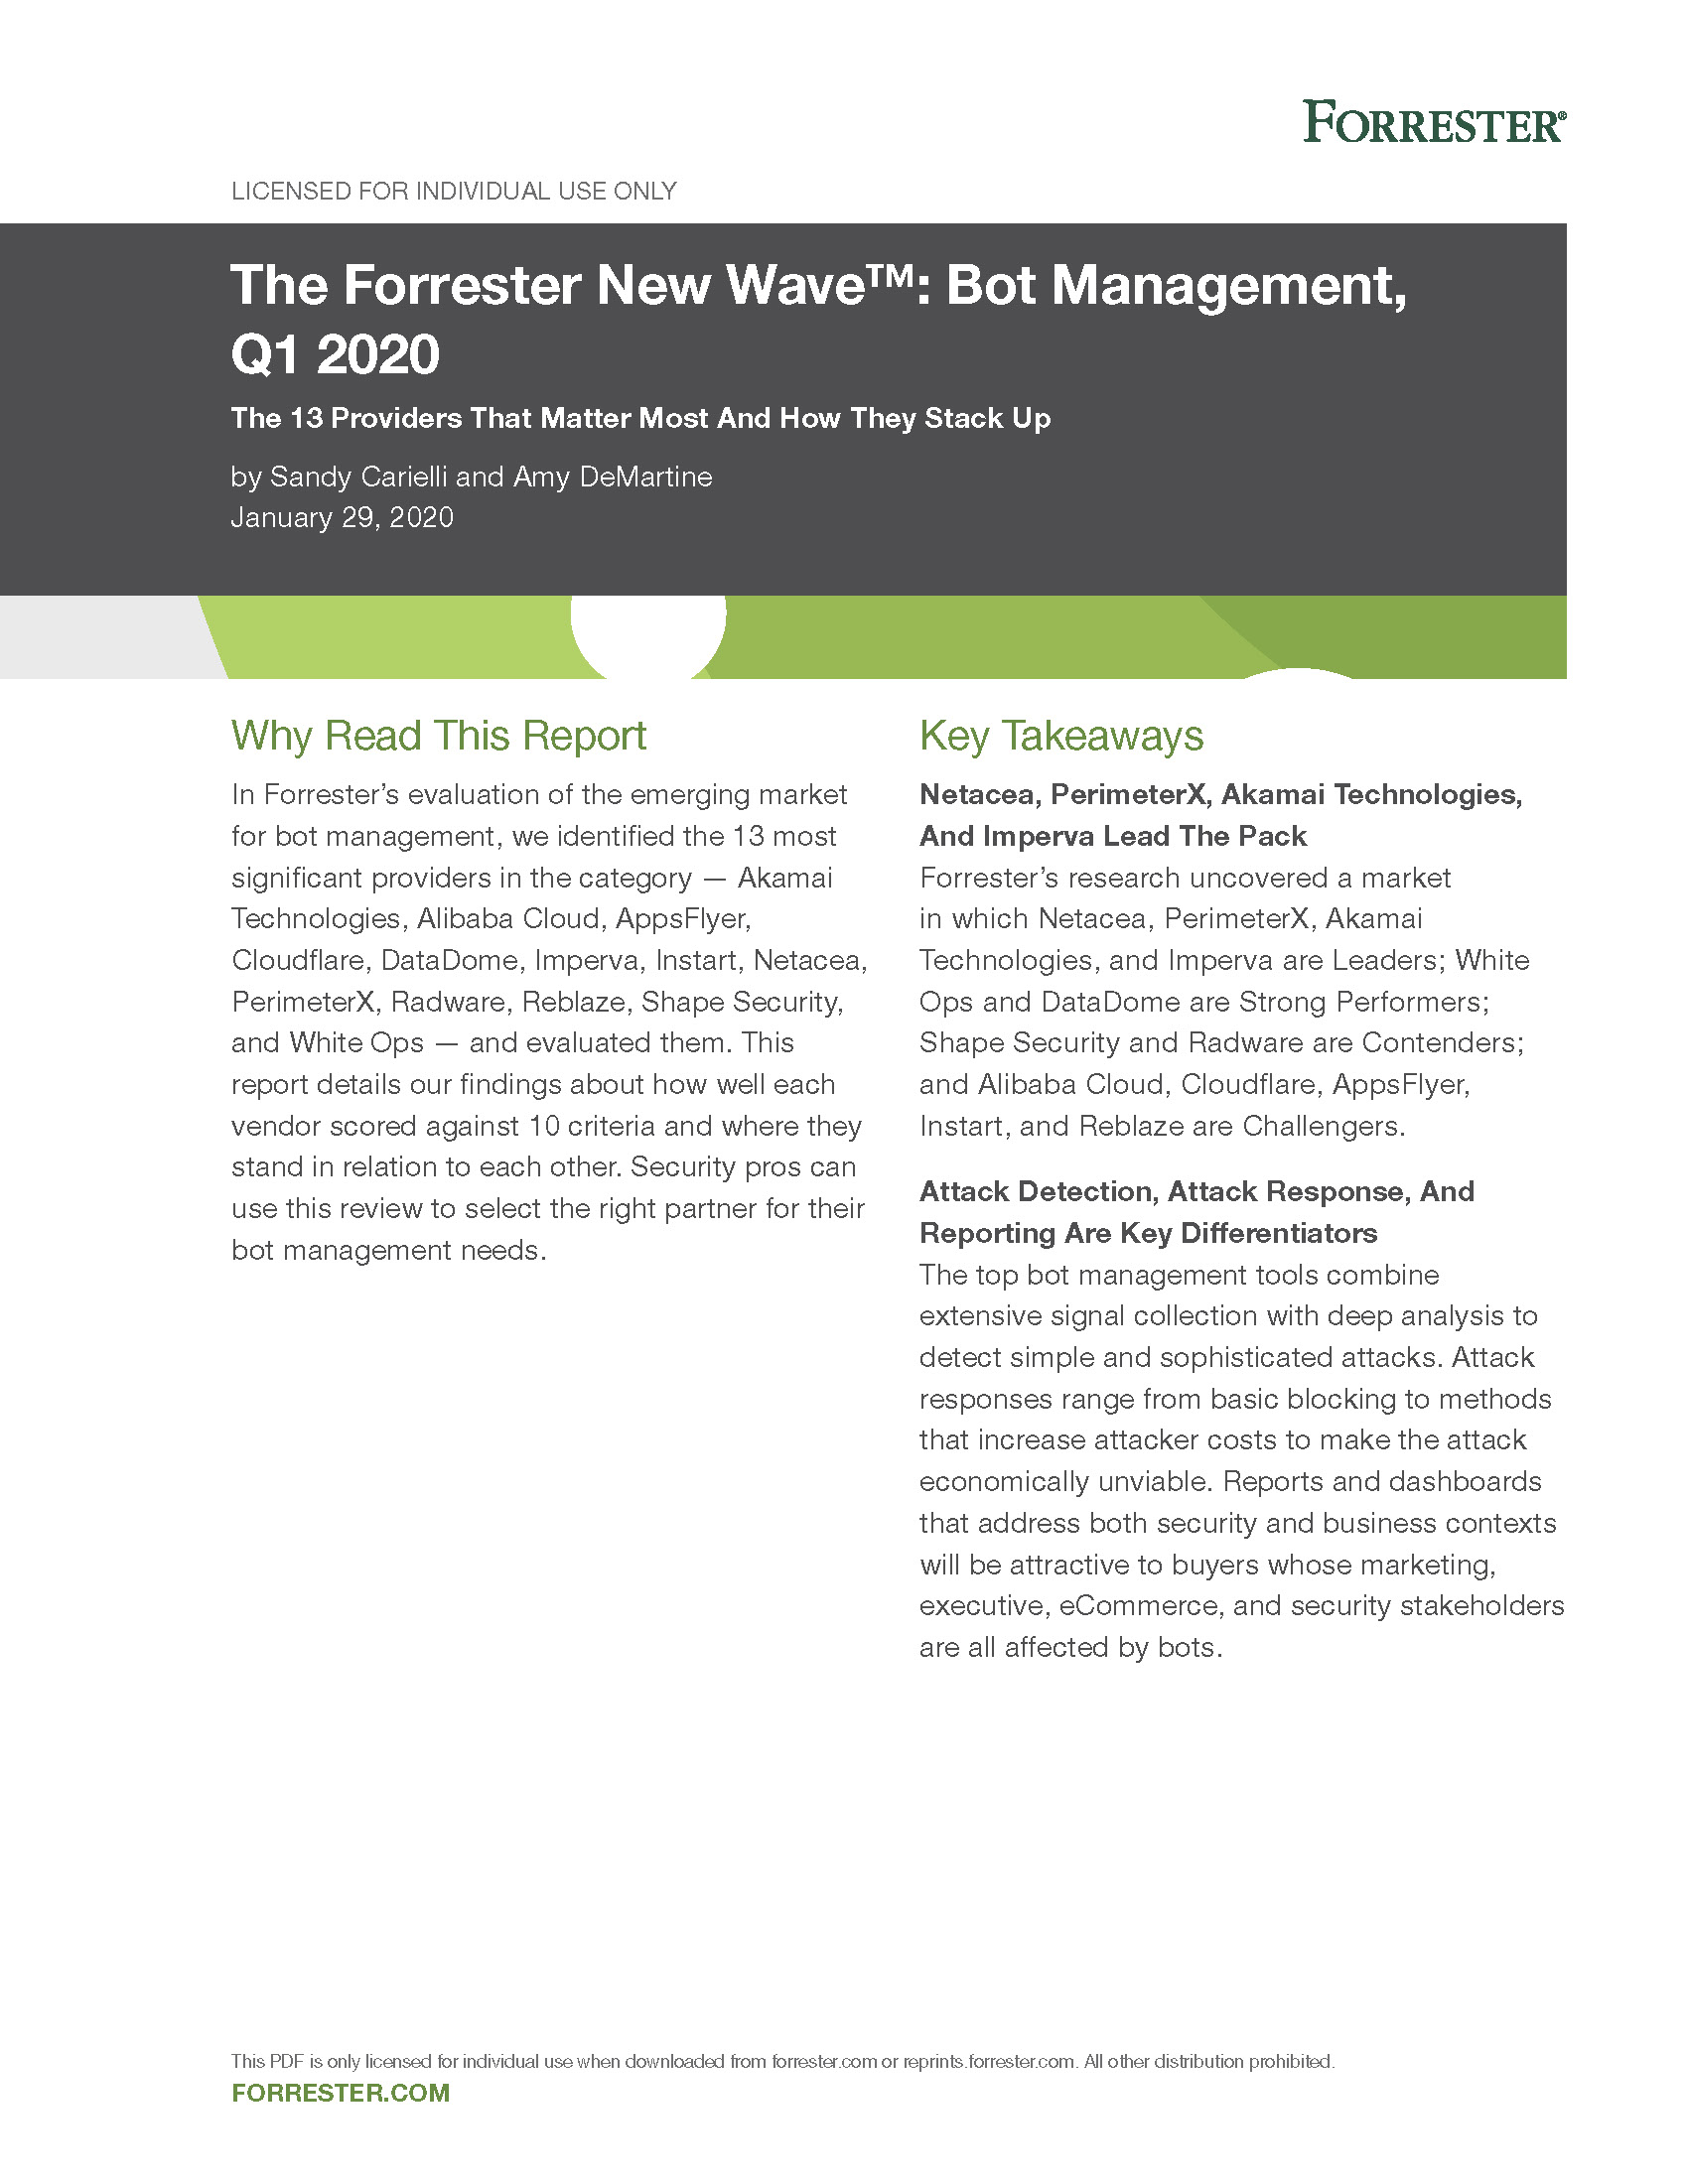 The Forrester New Wave™_ Bot Management, Q1 2020_Page_01